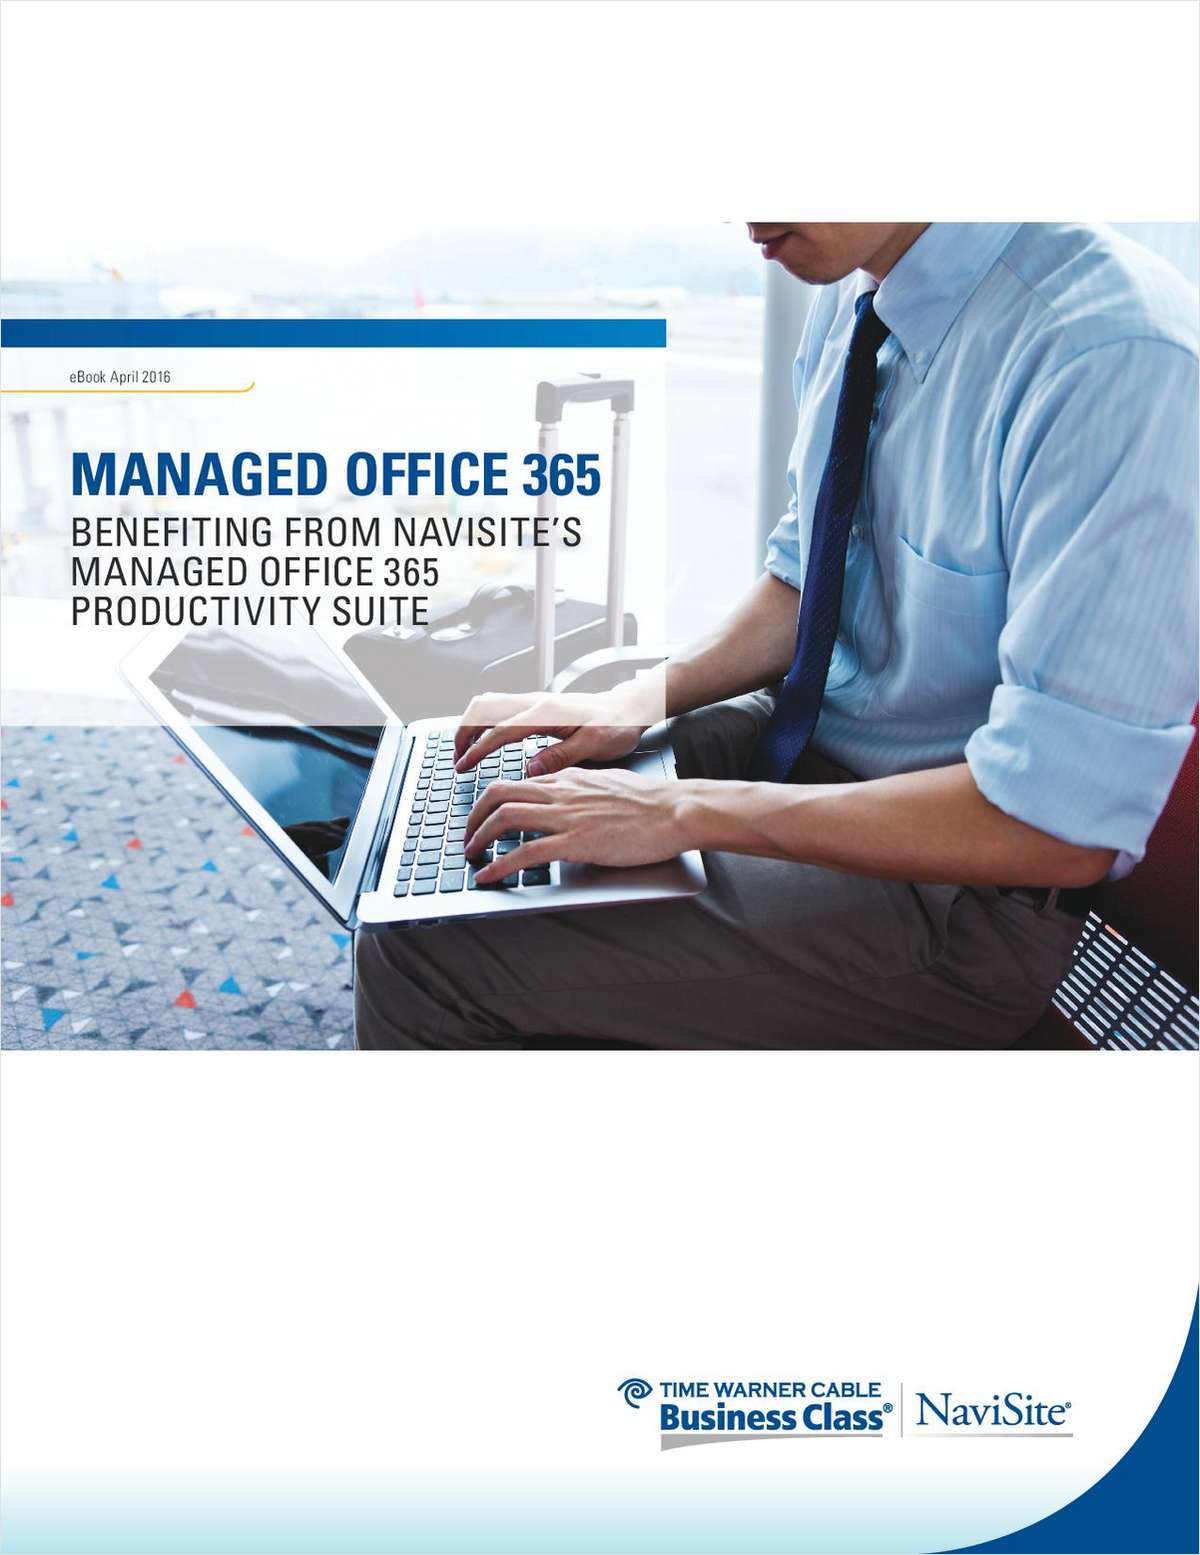 Benefiting From NaviSite's Managed Office 365 Productivity Suite